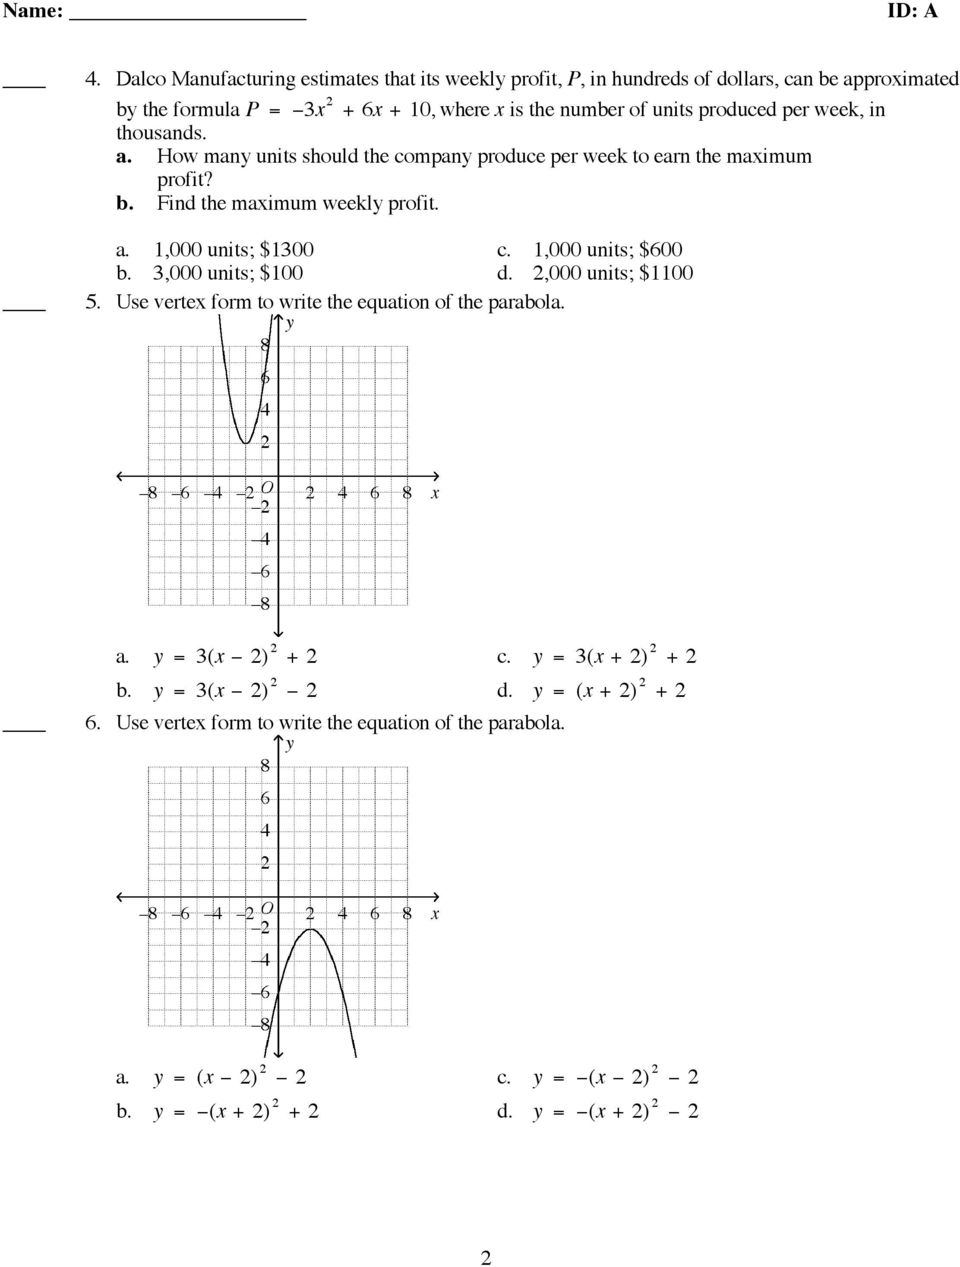 Algebra 2 Chapter 5 Practice Test (Review) - PDF